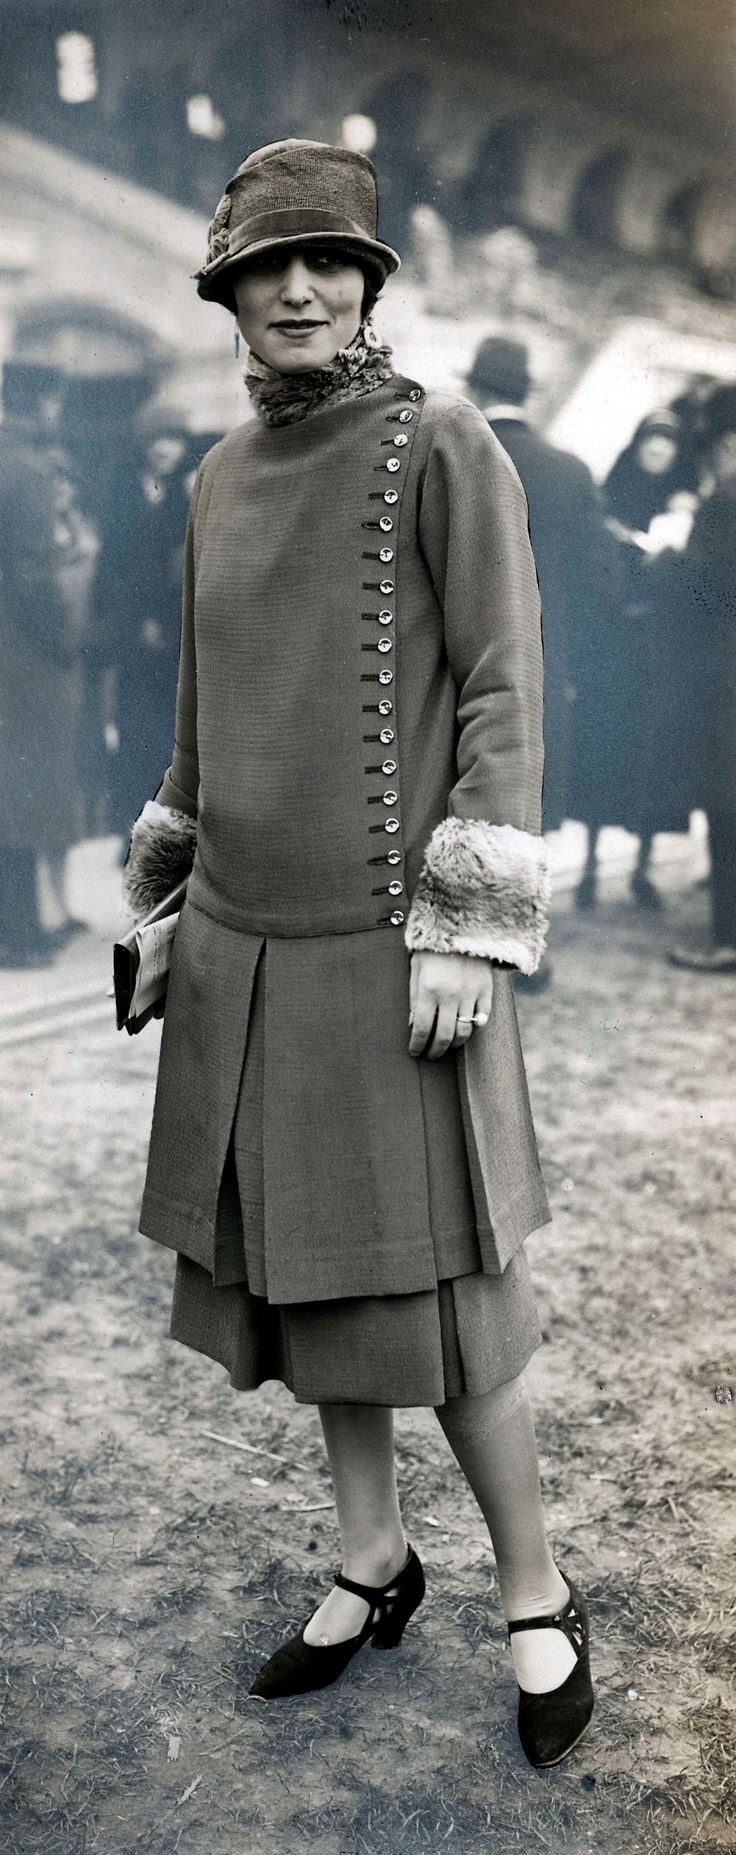 Street Fashion - 1926 - Photo by Meurisse - @~ Mlle